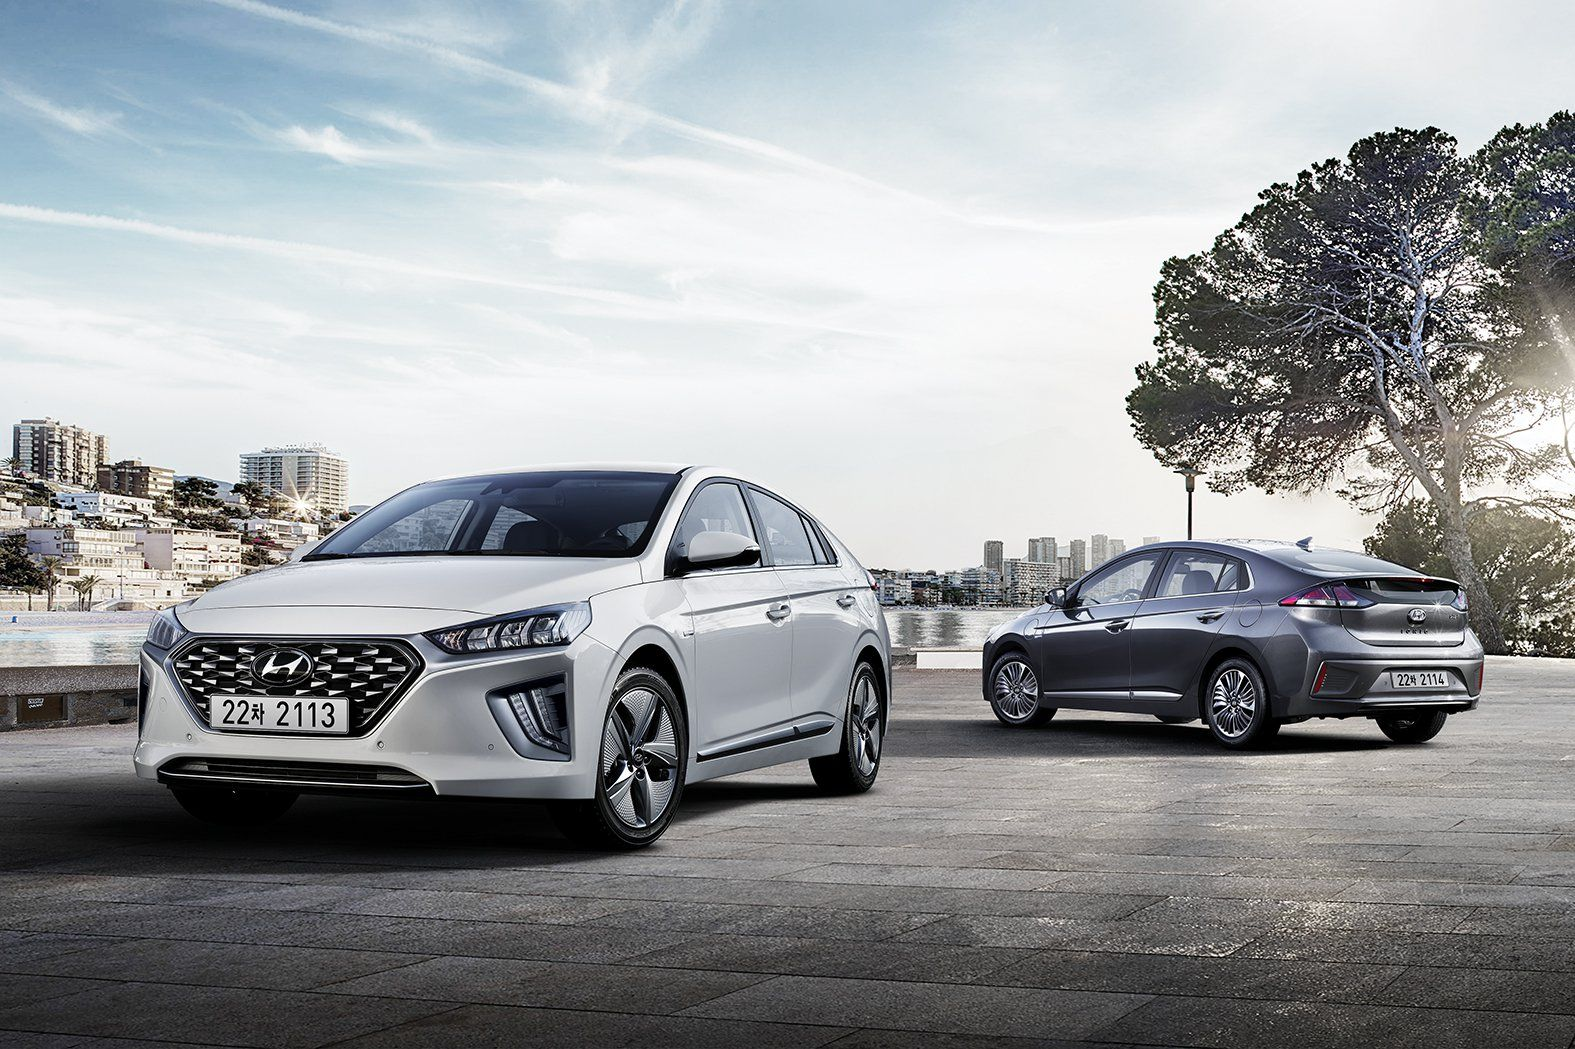 2020 Hyundai Ioniq Facelift Debuts With Styling And Tech Updates Voiture Hybride Modes Voiture